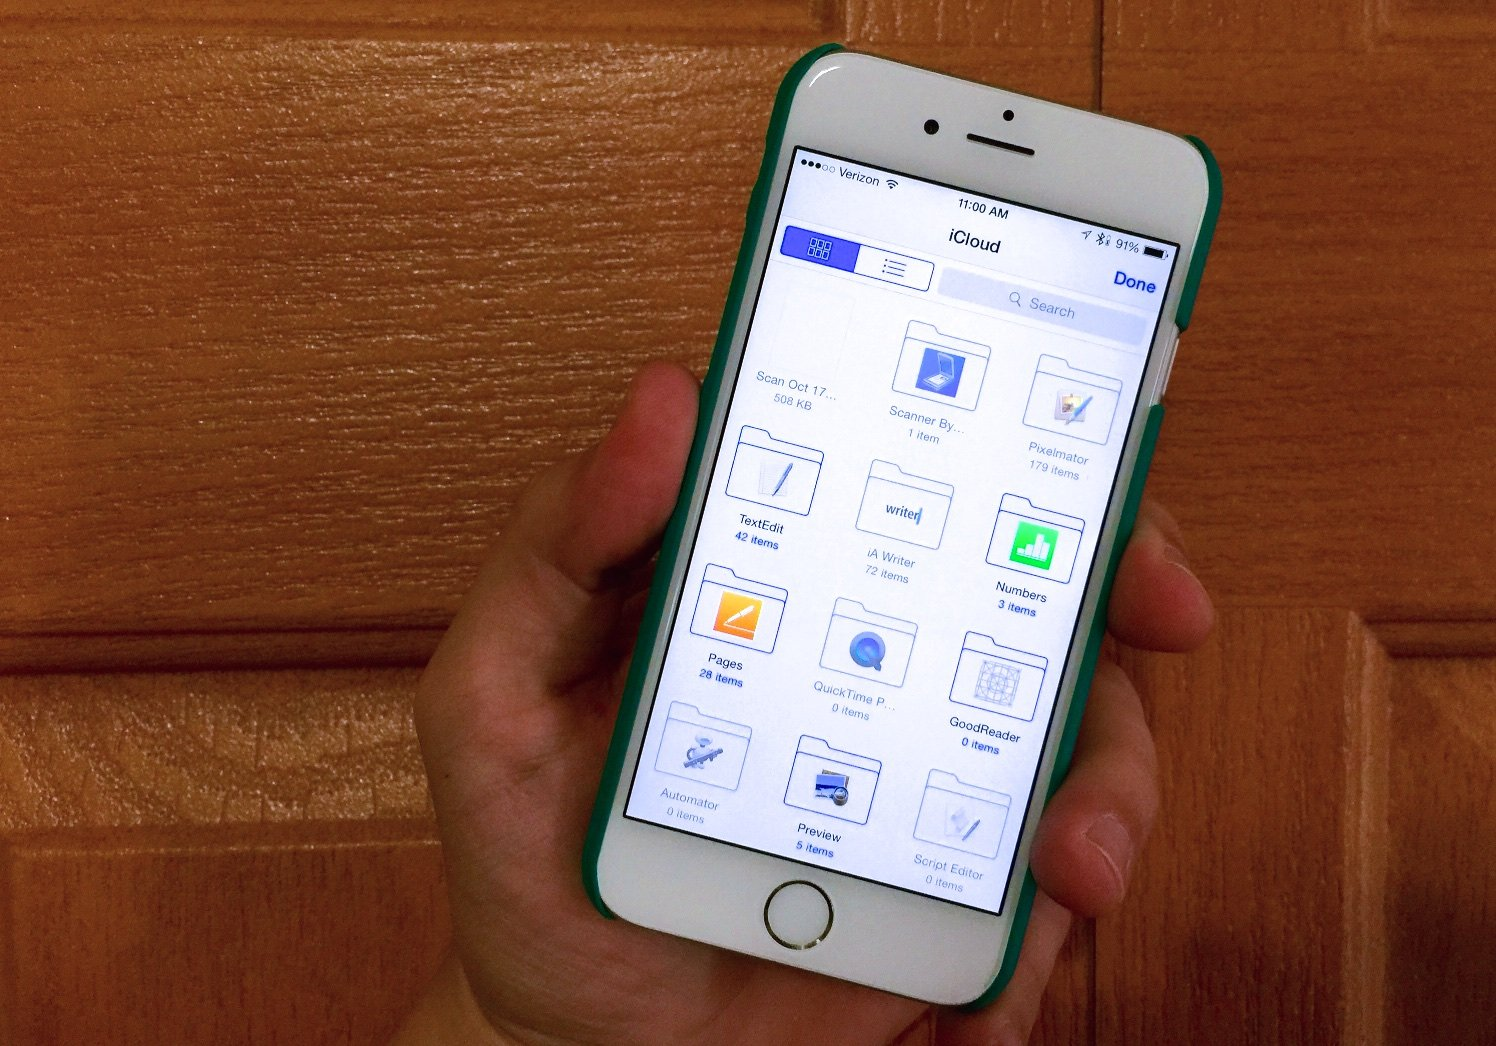 Learn how to set up iCloud Drive and use it on iPhone, iPad, Mac and Windows.